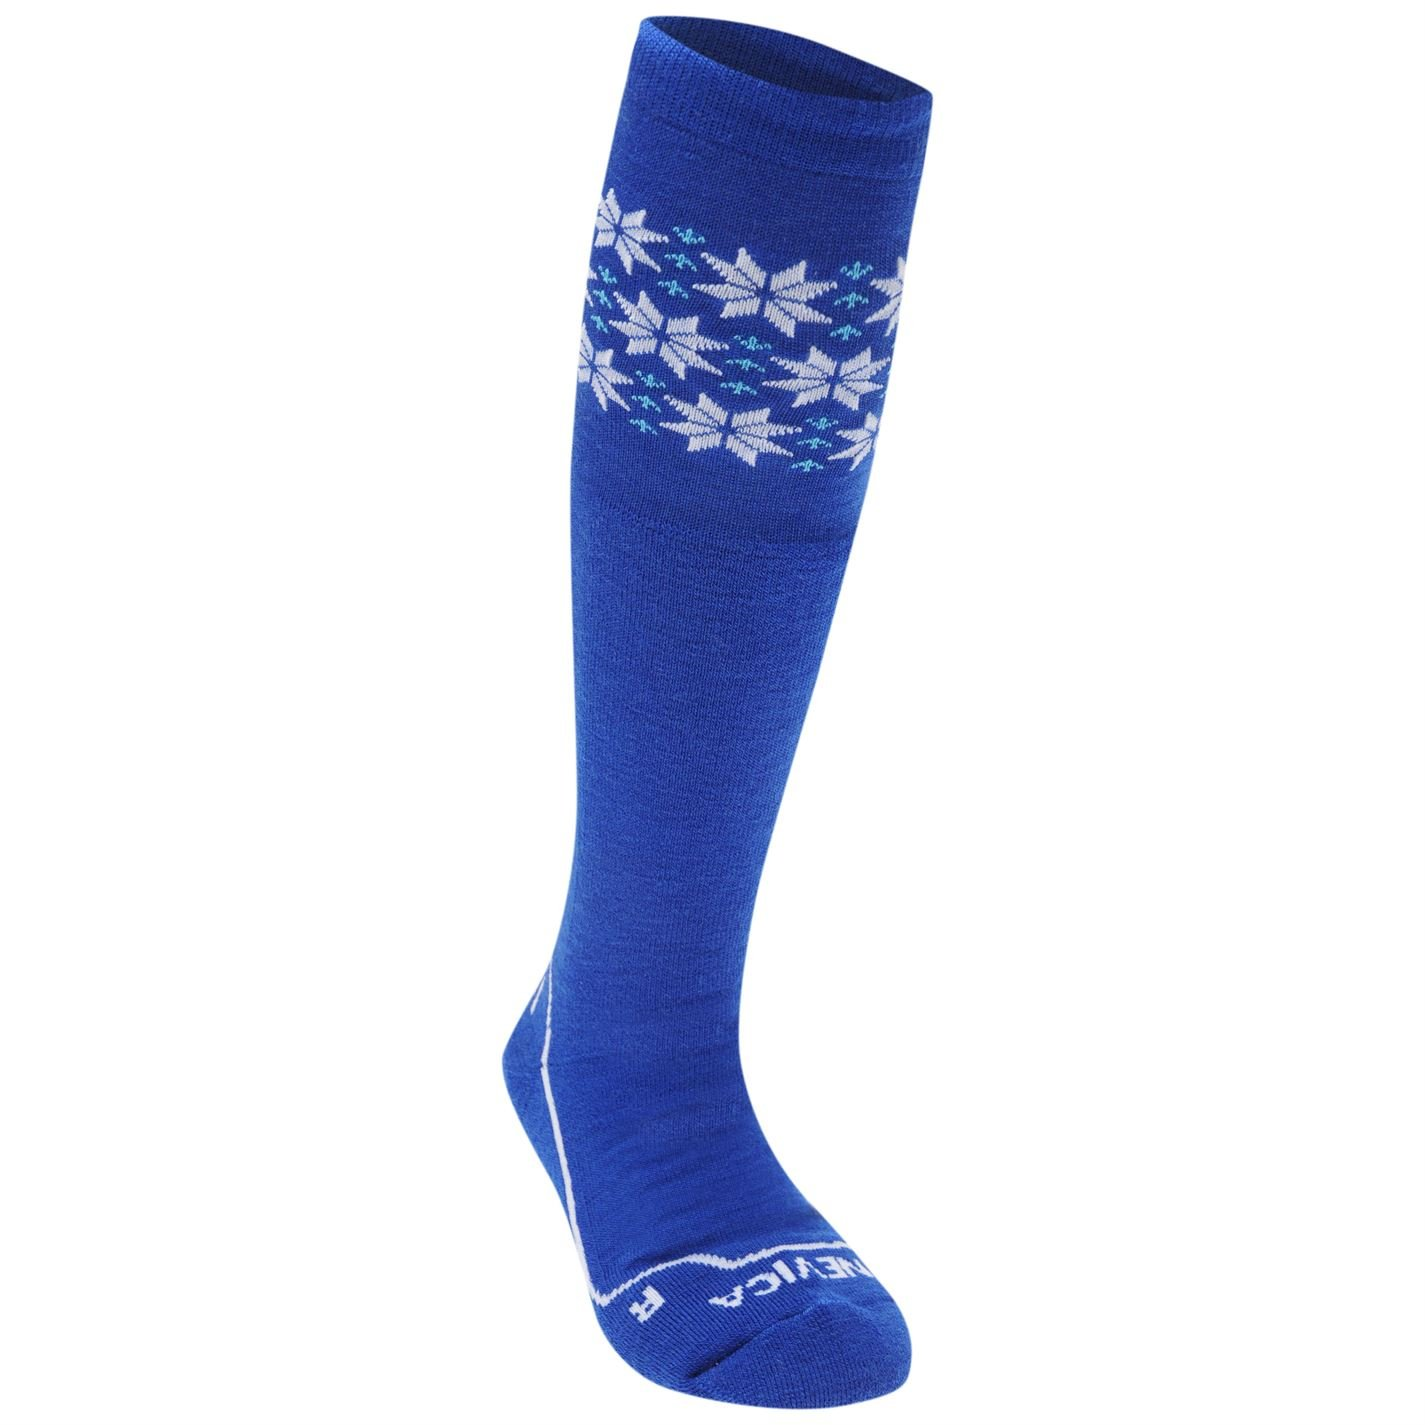 Nevica Kids Juniors Extreme Snow Ski Socks 1 Pack Thermal Junior 1-6 Royal/White